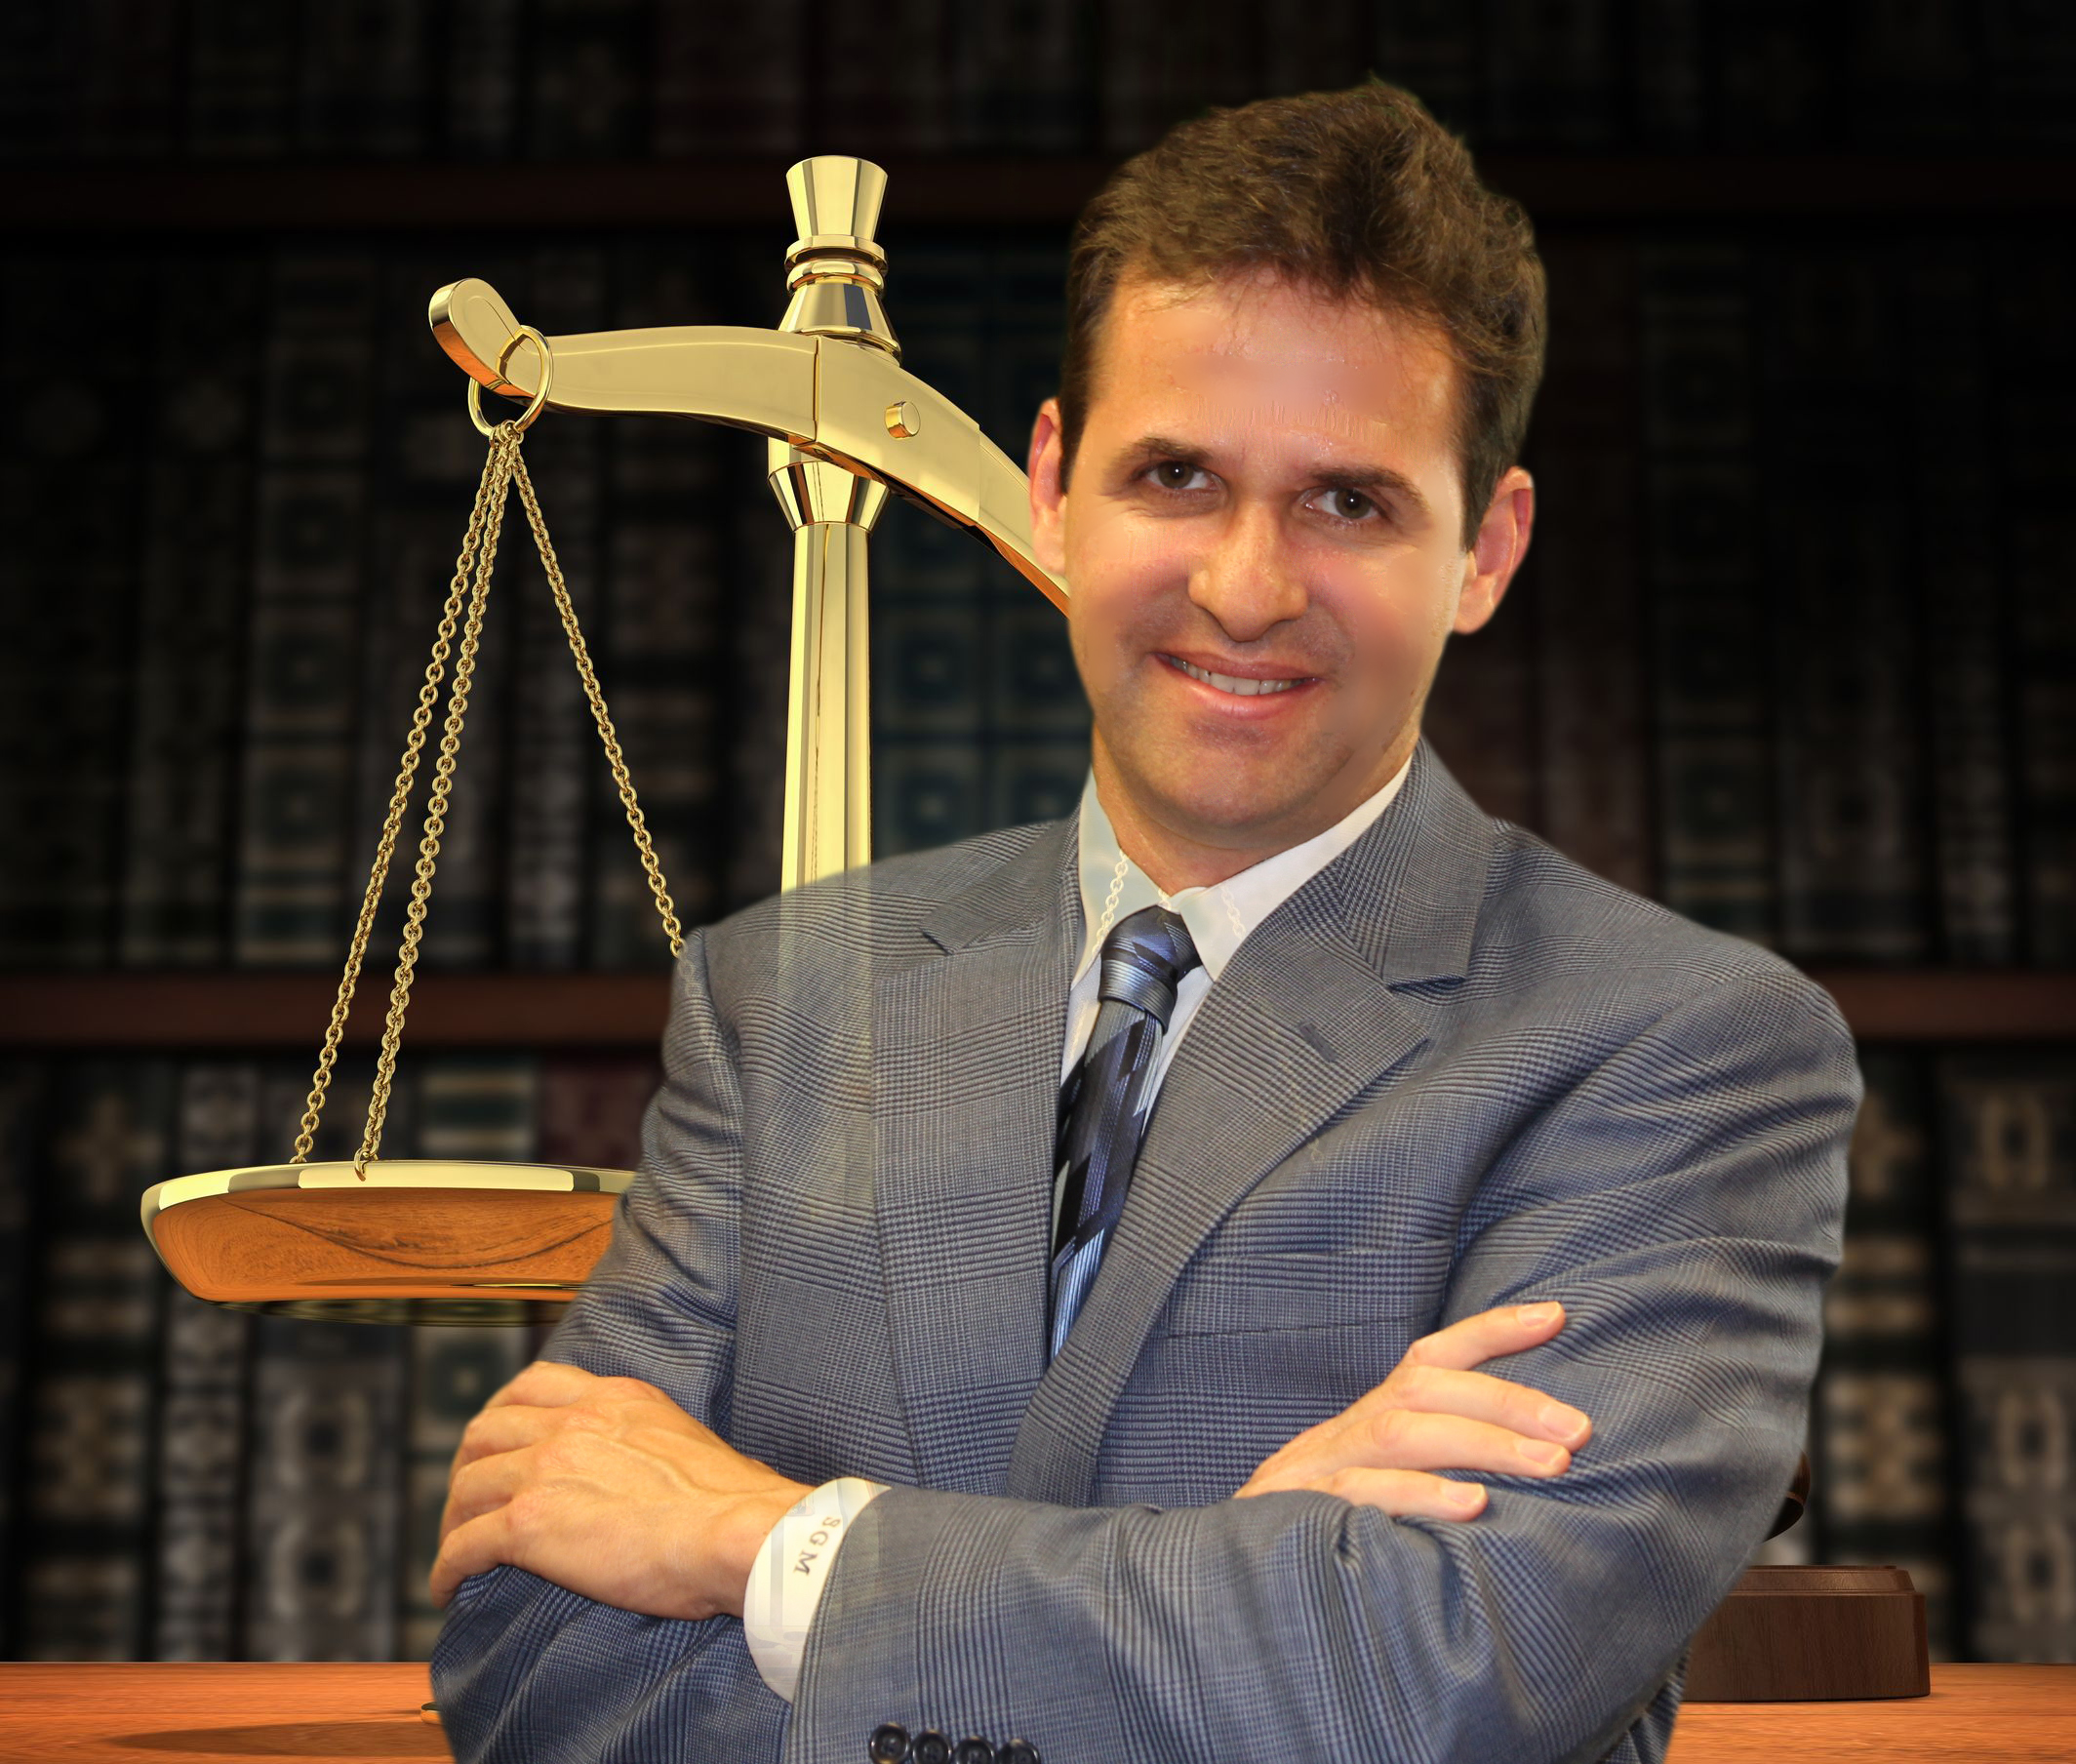 Scott Monge Personal Injury Law Firm Monge Associates Offer Case Reviews At No Cost